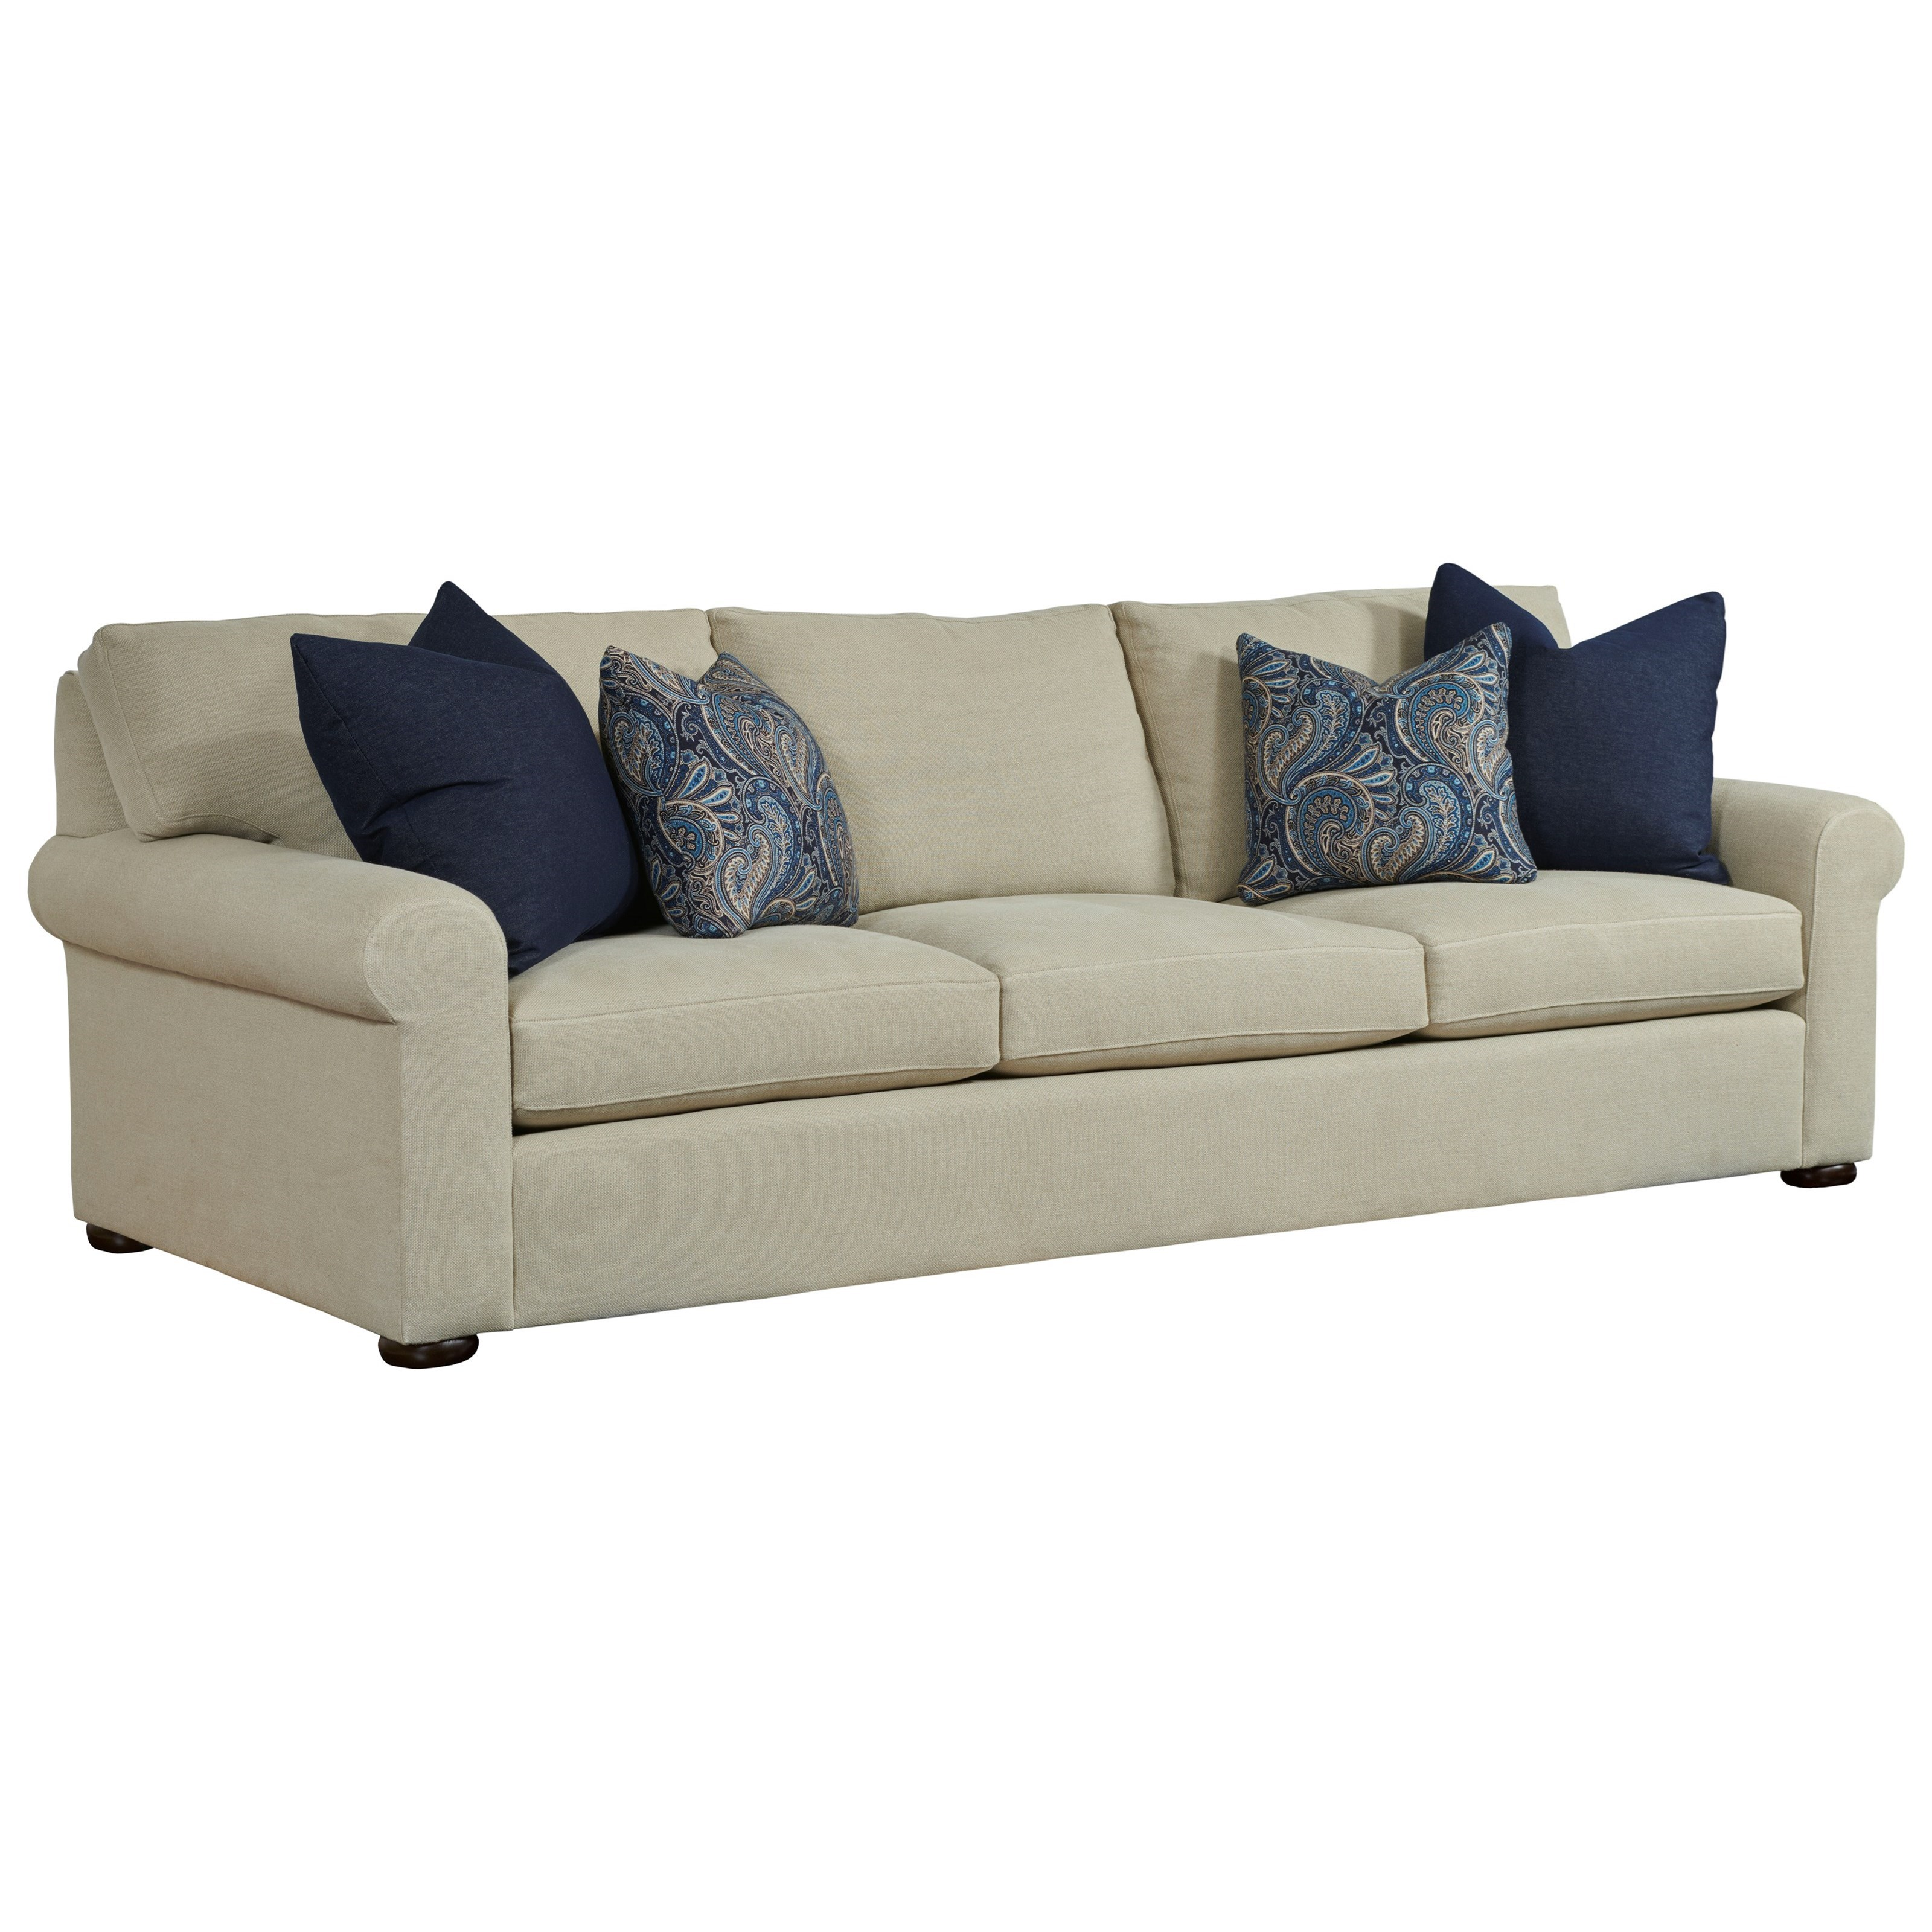 Comfort Select Grande Sofa by Kincaid Furniture at Pedigo Furniture